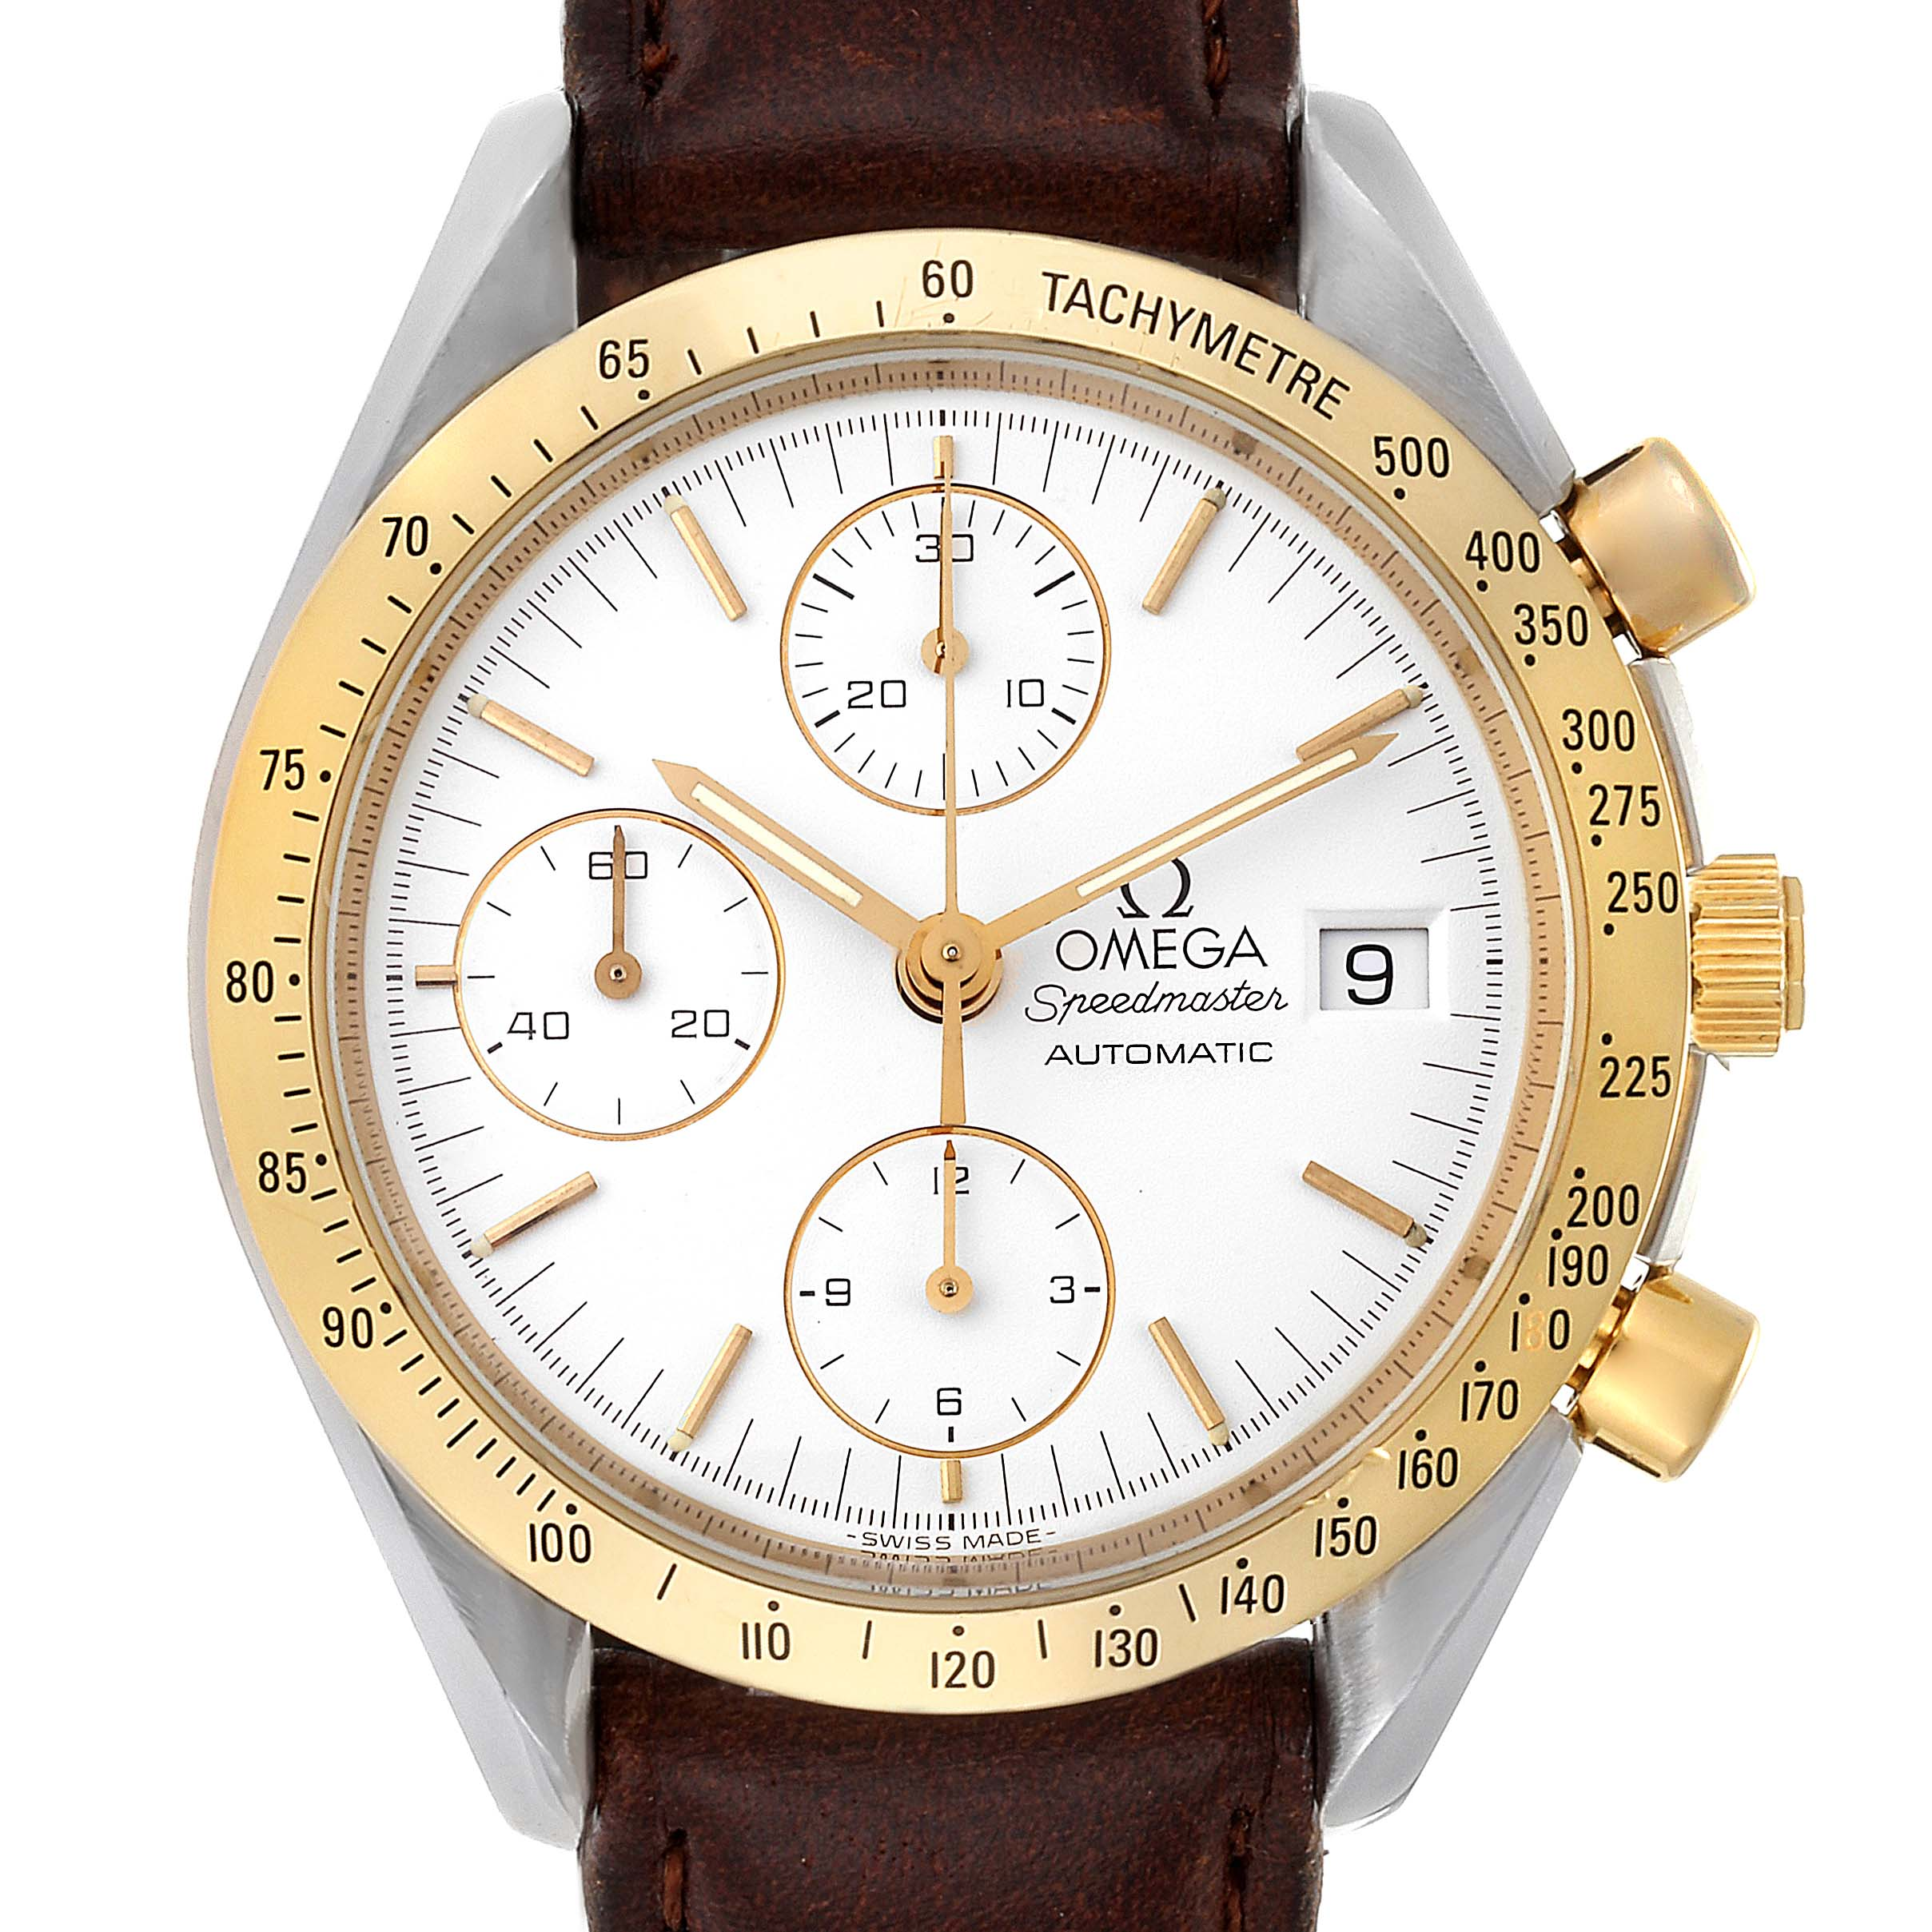 Omega Speedmaster Date Steel Yellow Gold Chronograph Watch 3311.20.00